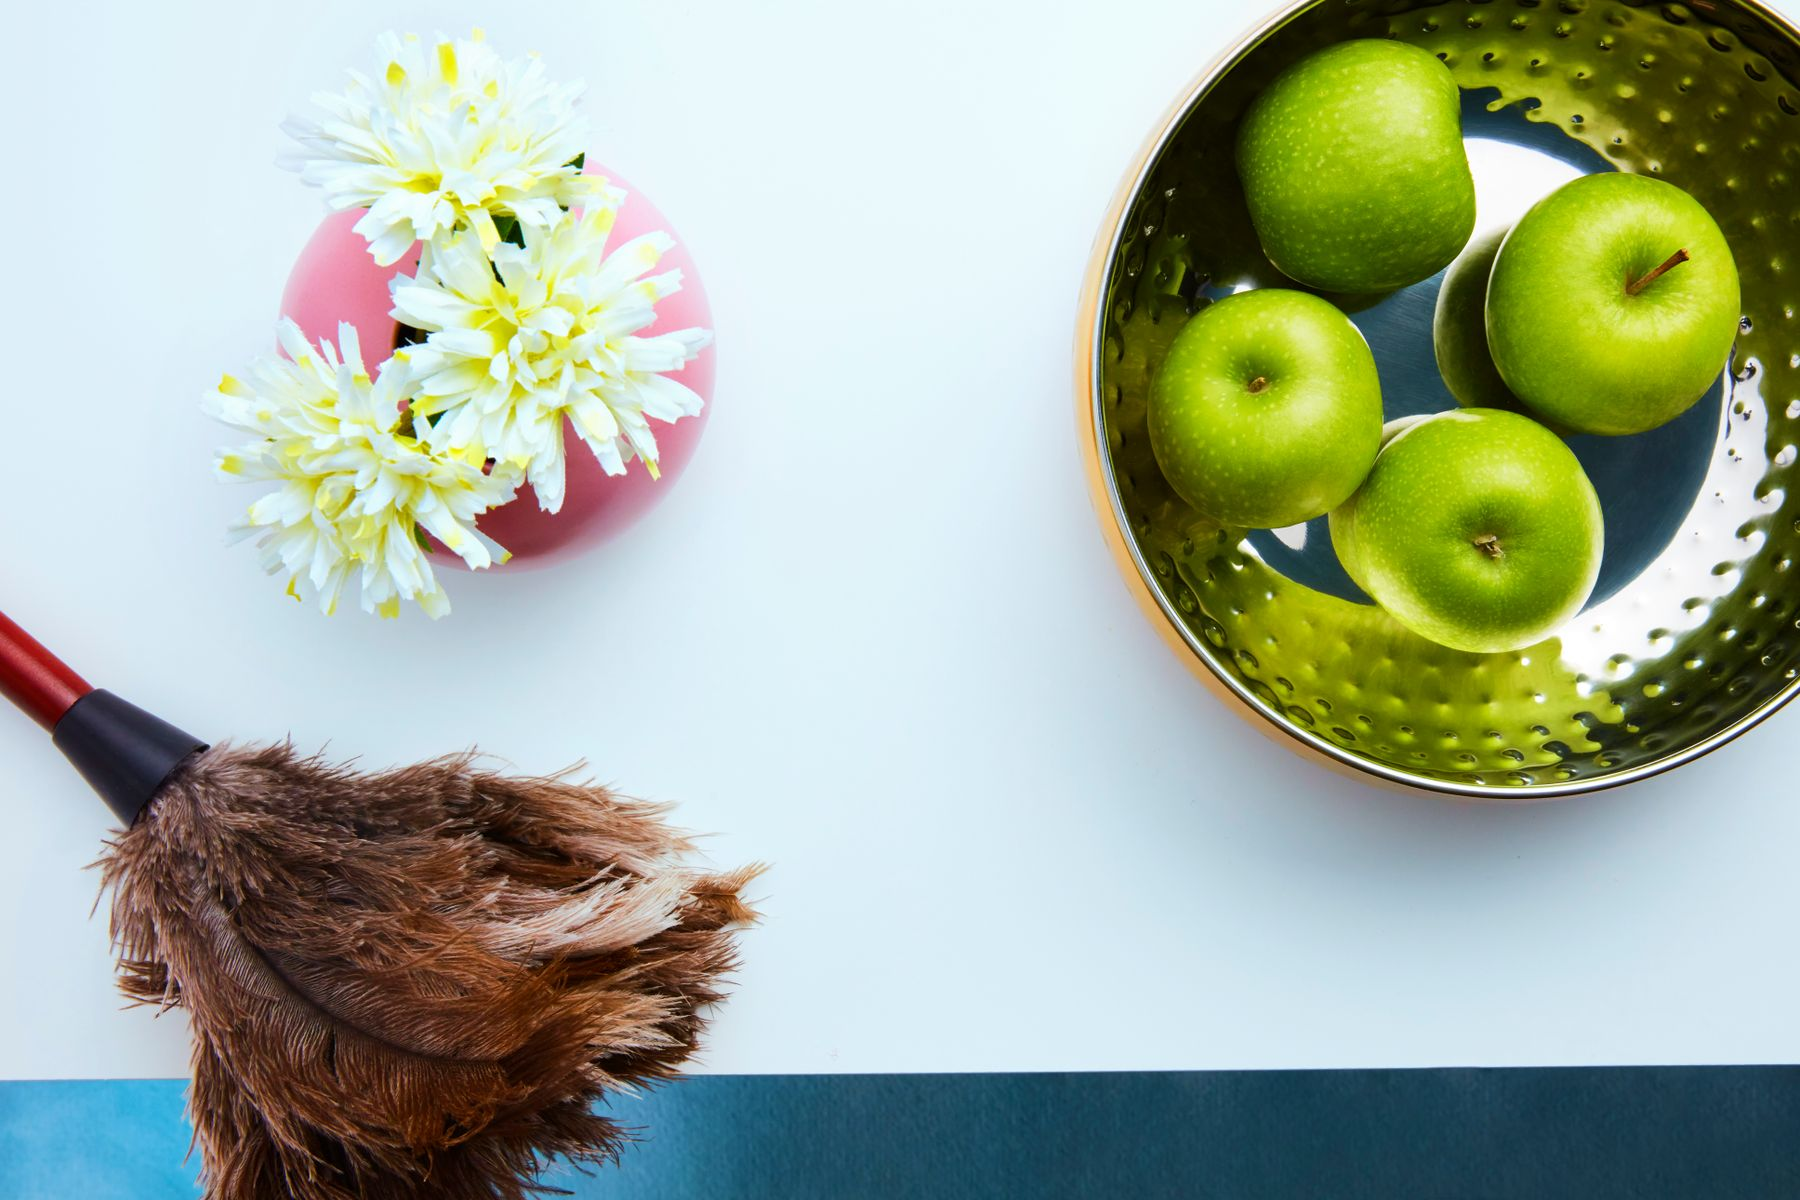 Feather duster next to a bowl of apples